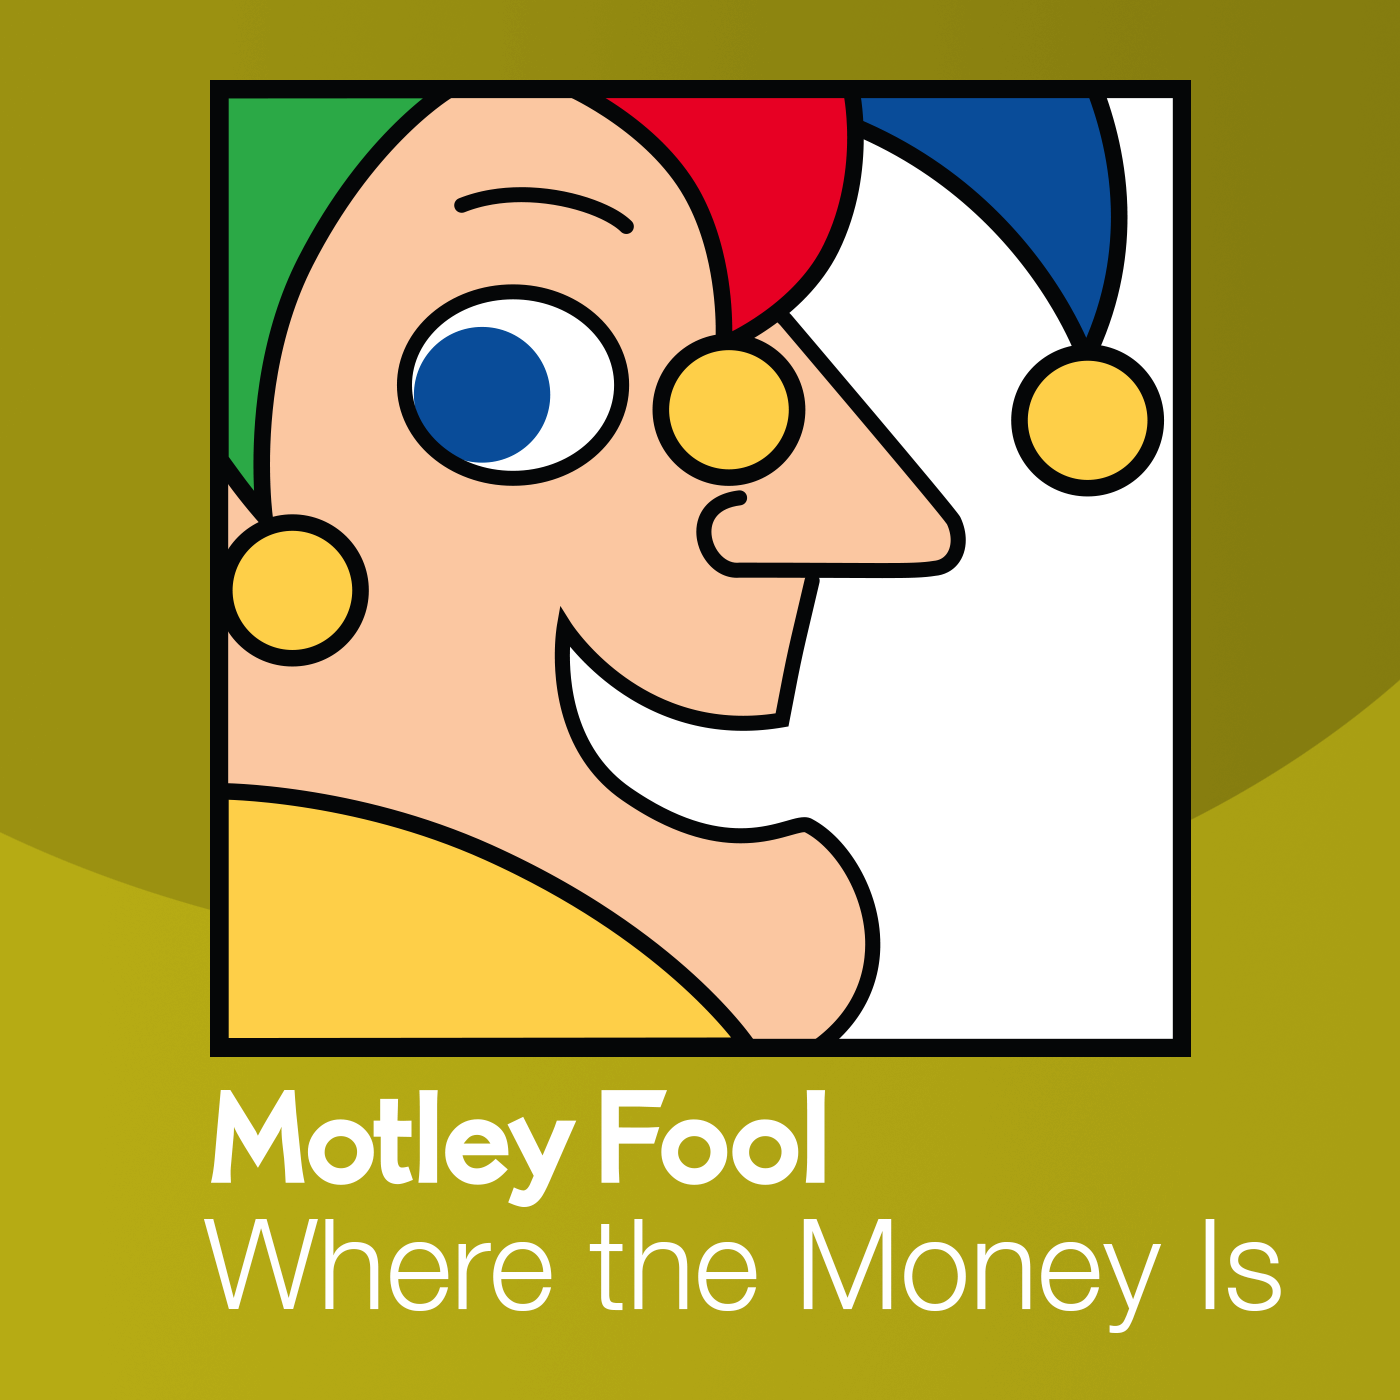 Where the Money Is 03.21.14